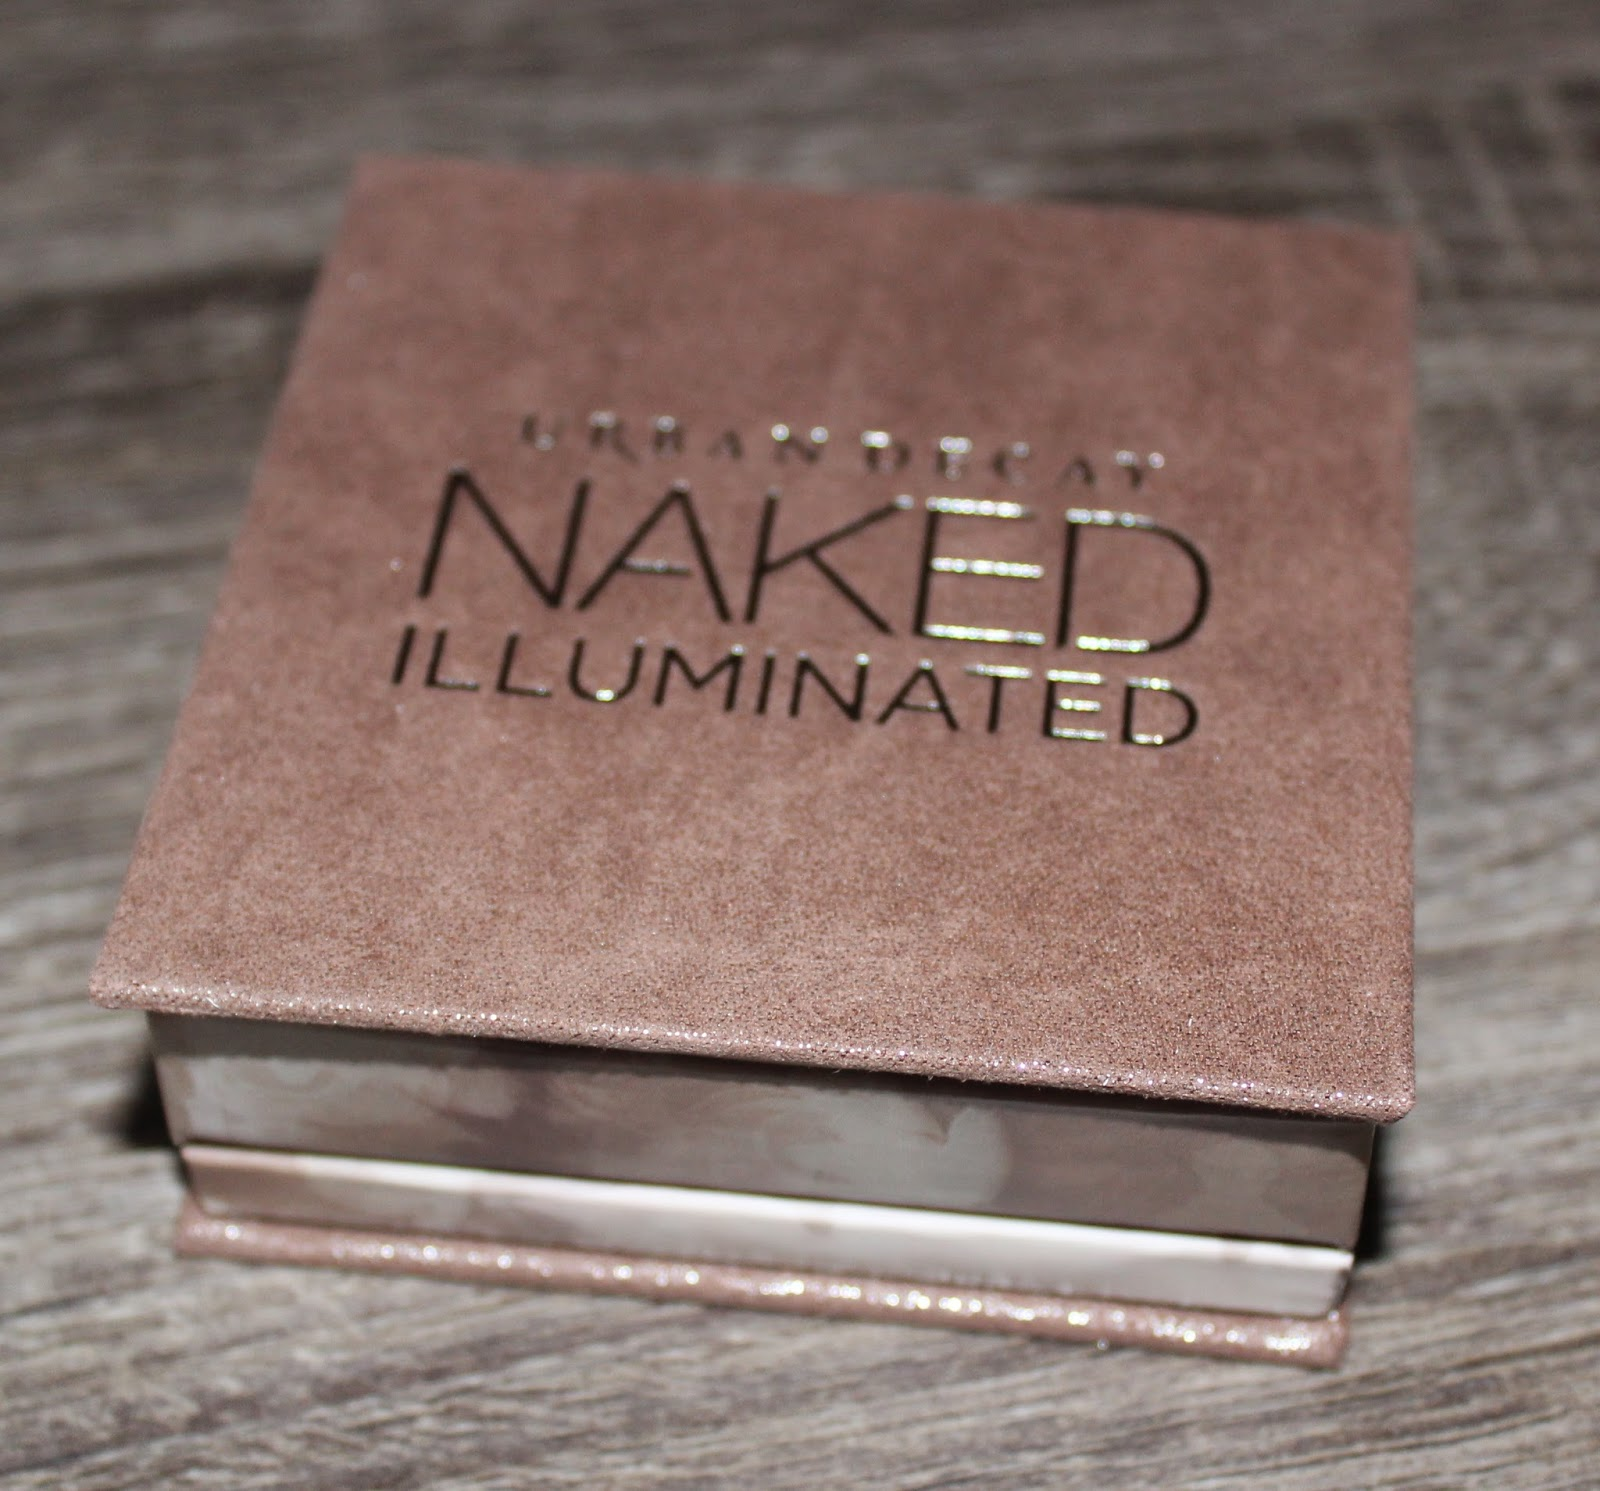 Urban Decay Naked Illuminated in Luminous